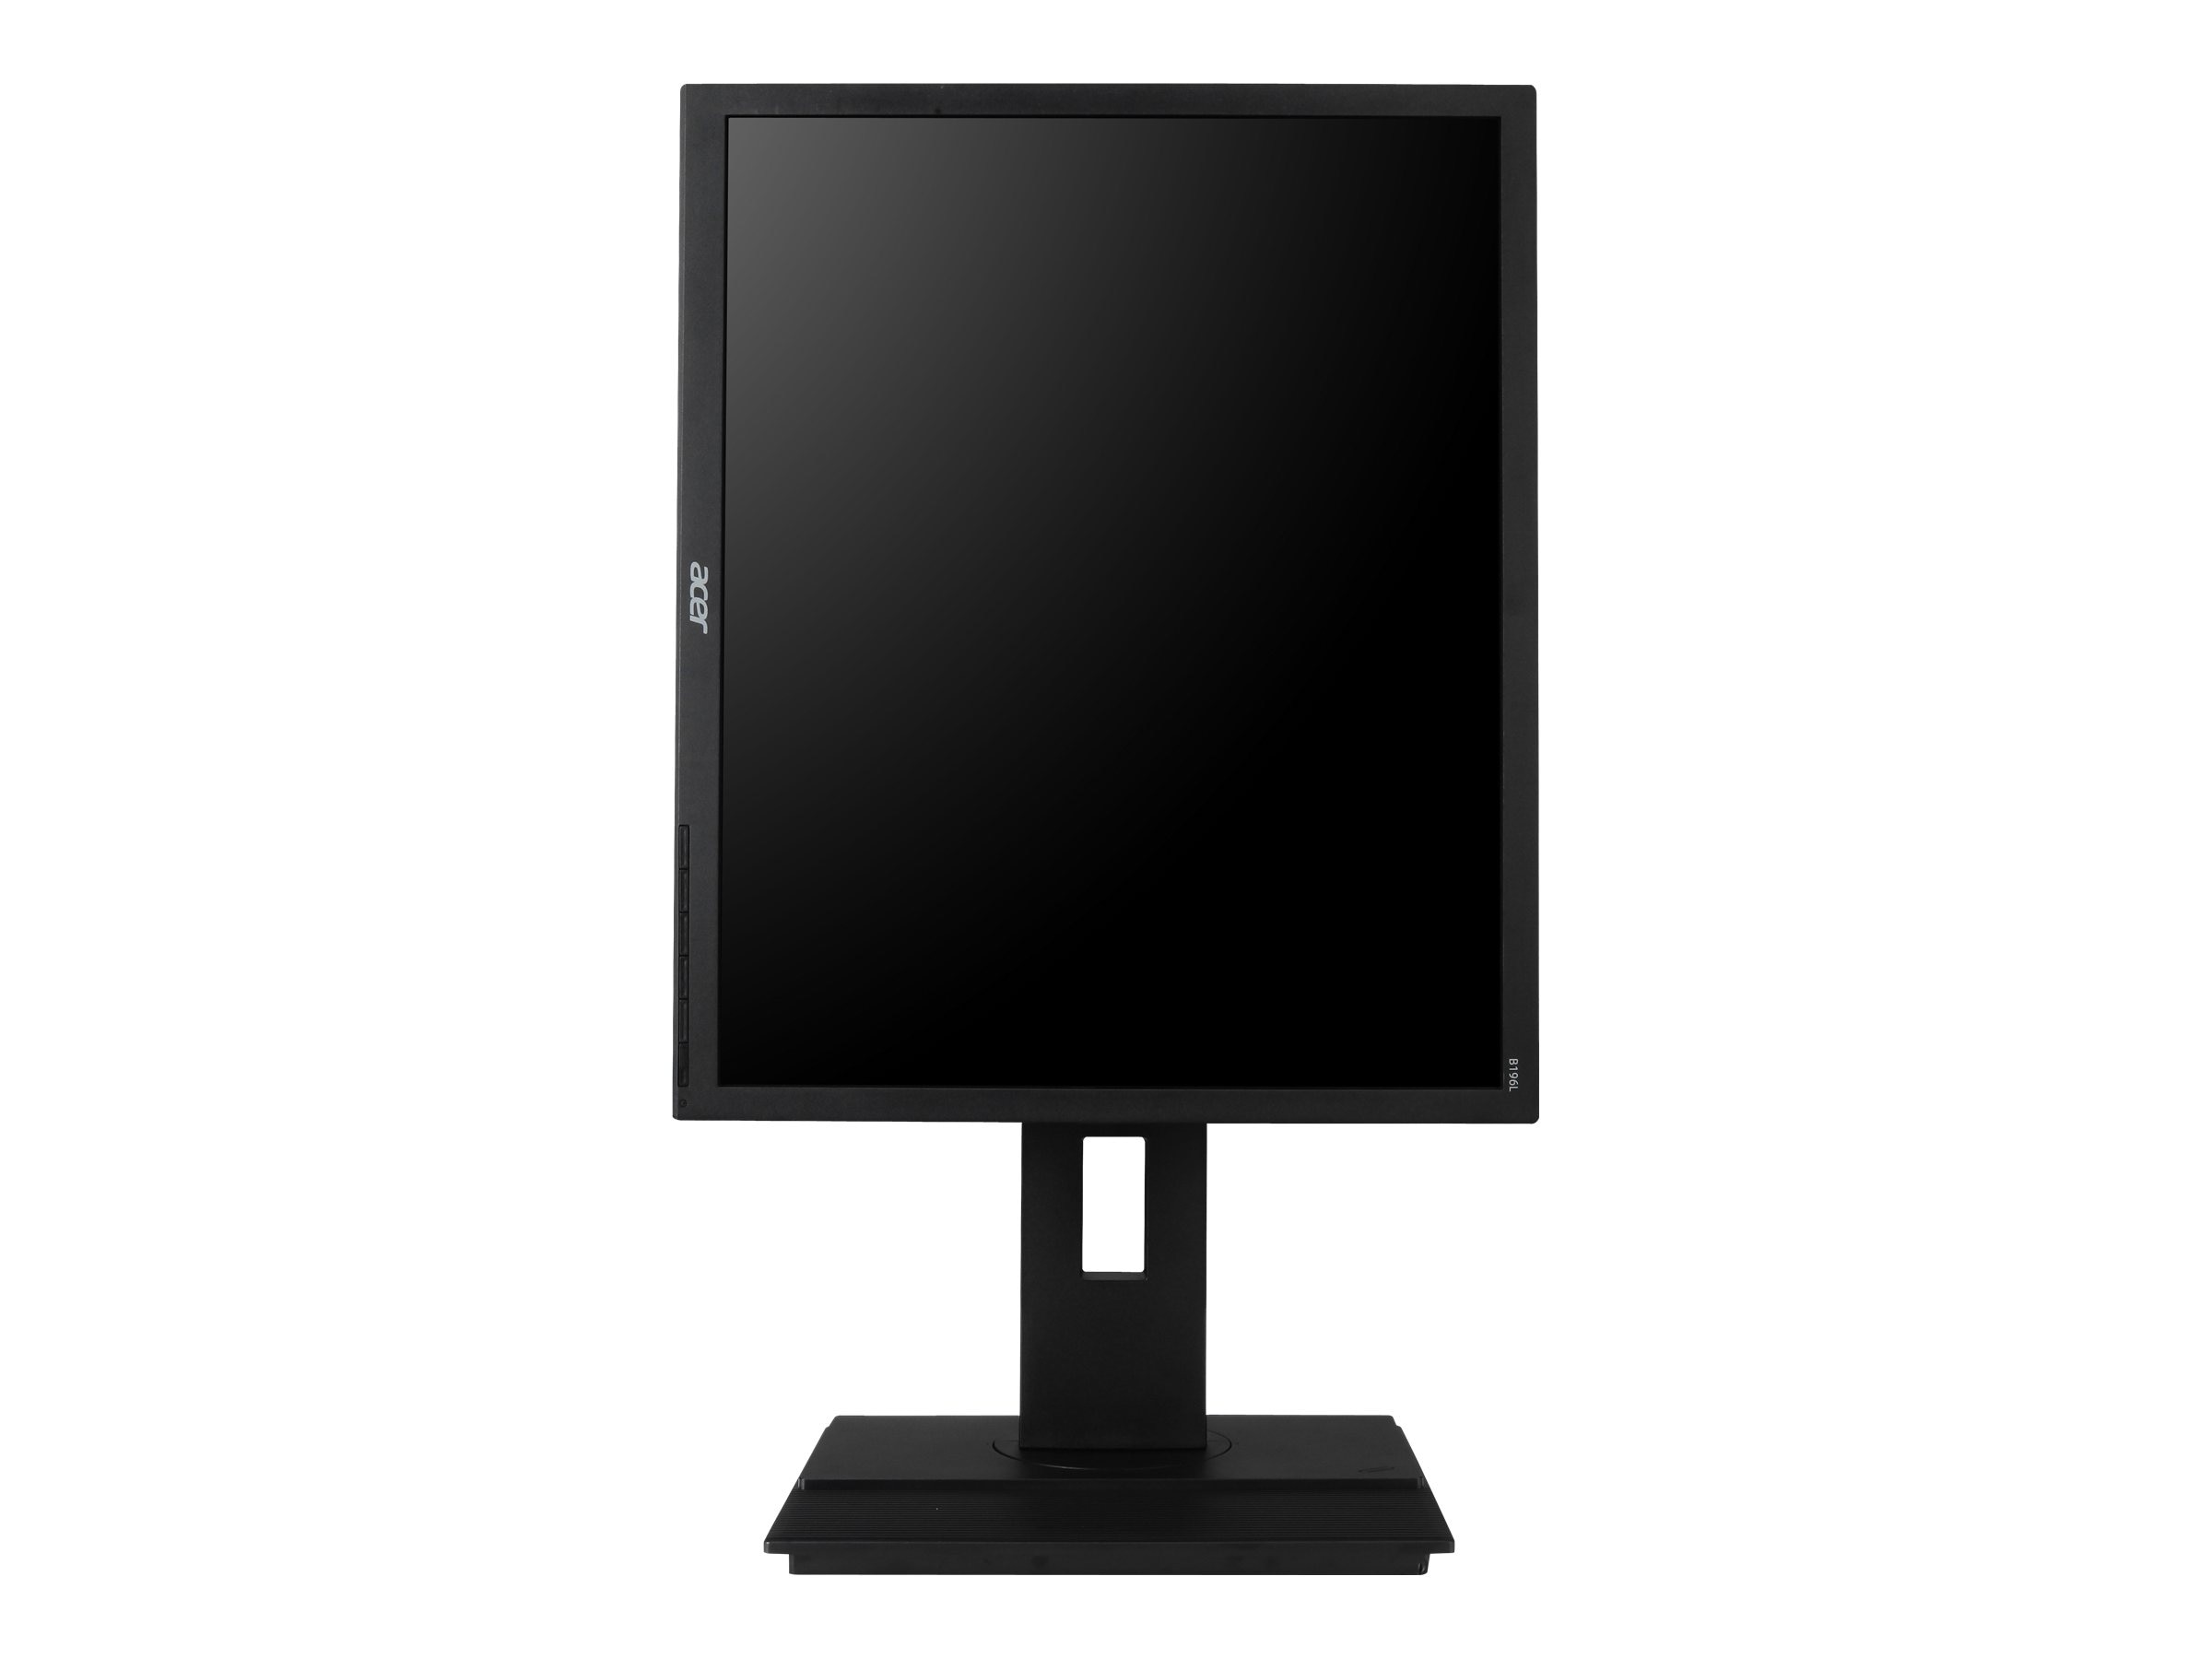 Acer 19 B196L Aymdr LED-LCD Monitor, Black